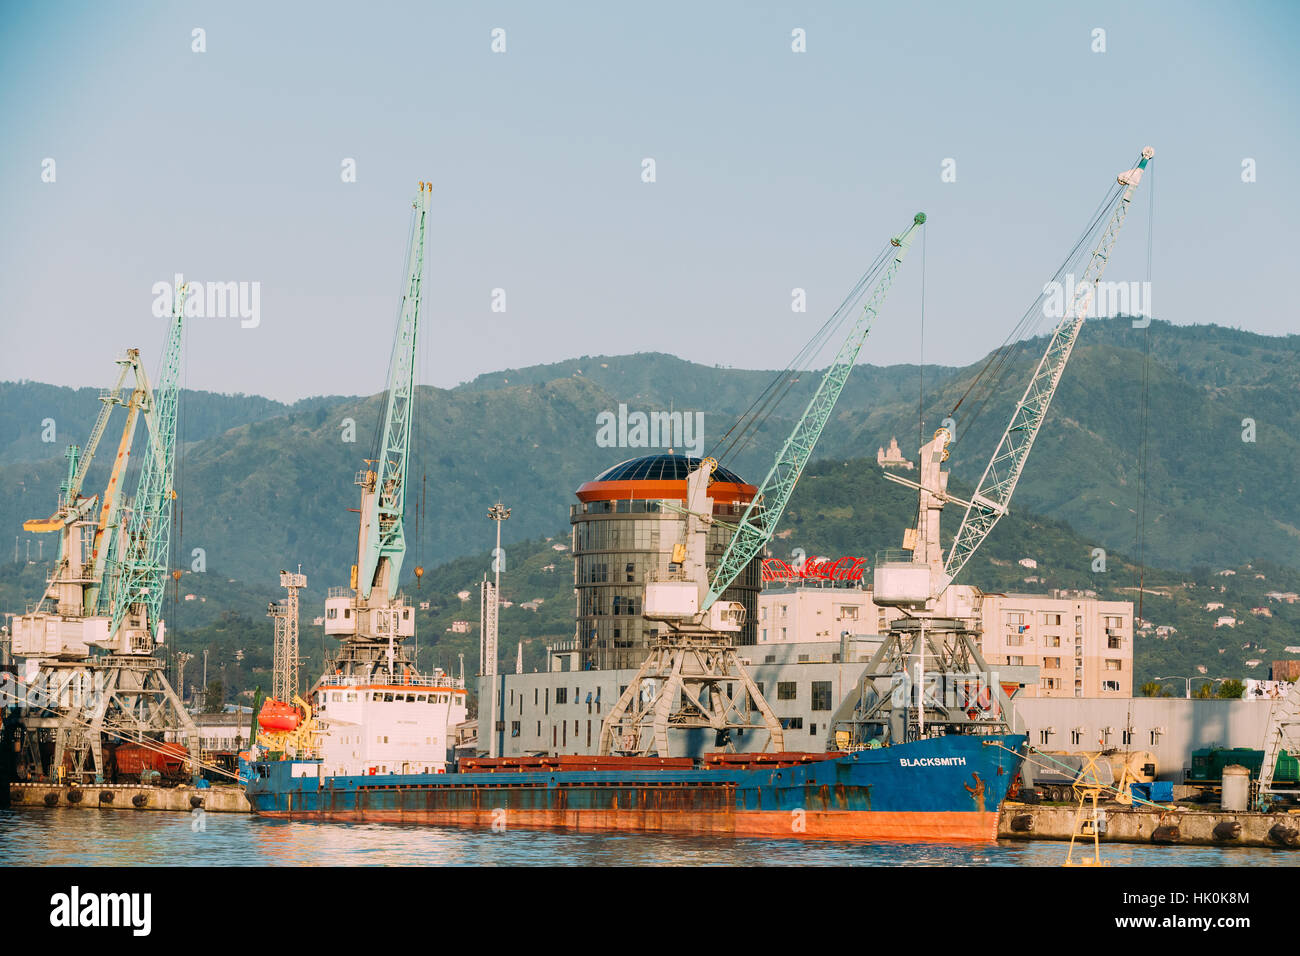 Old Barge Freight Ship Tanker In Port Dock On Sunny Evening At Sunset Or Sunrise Time In Batumi, Adjara, Georgia - Stock Image